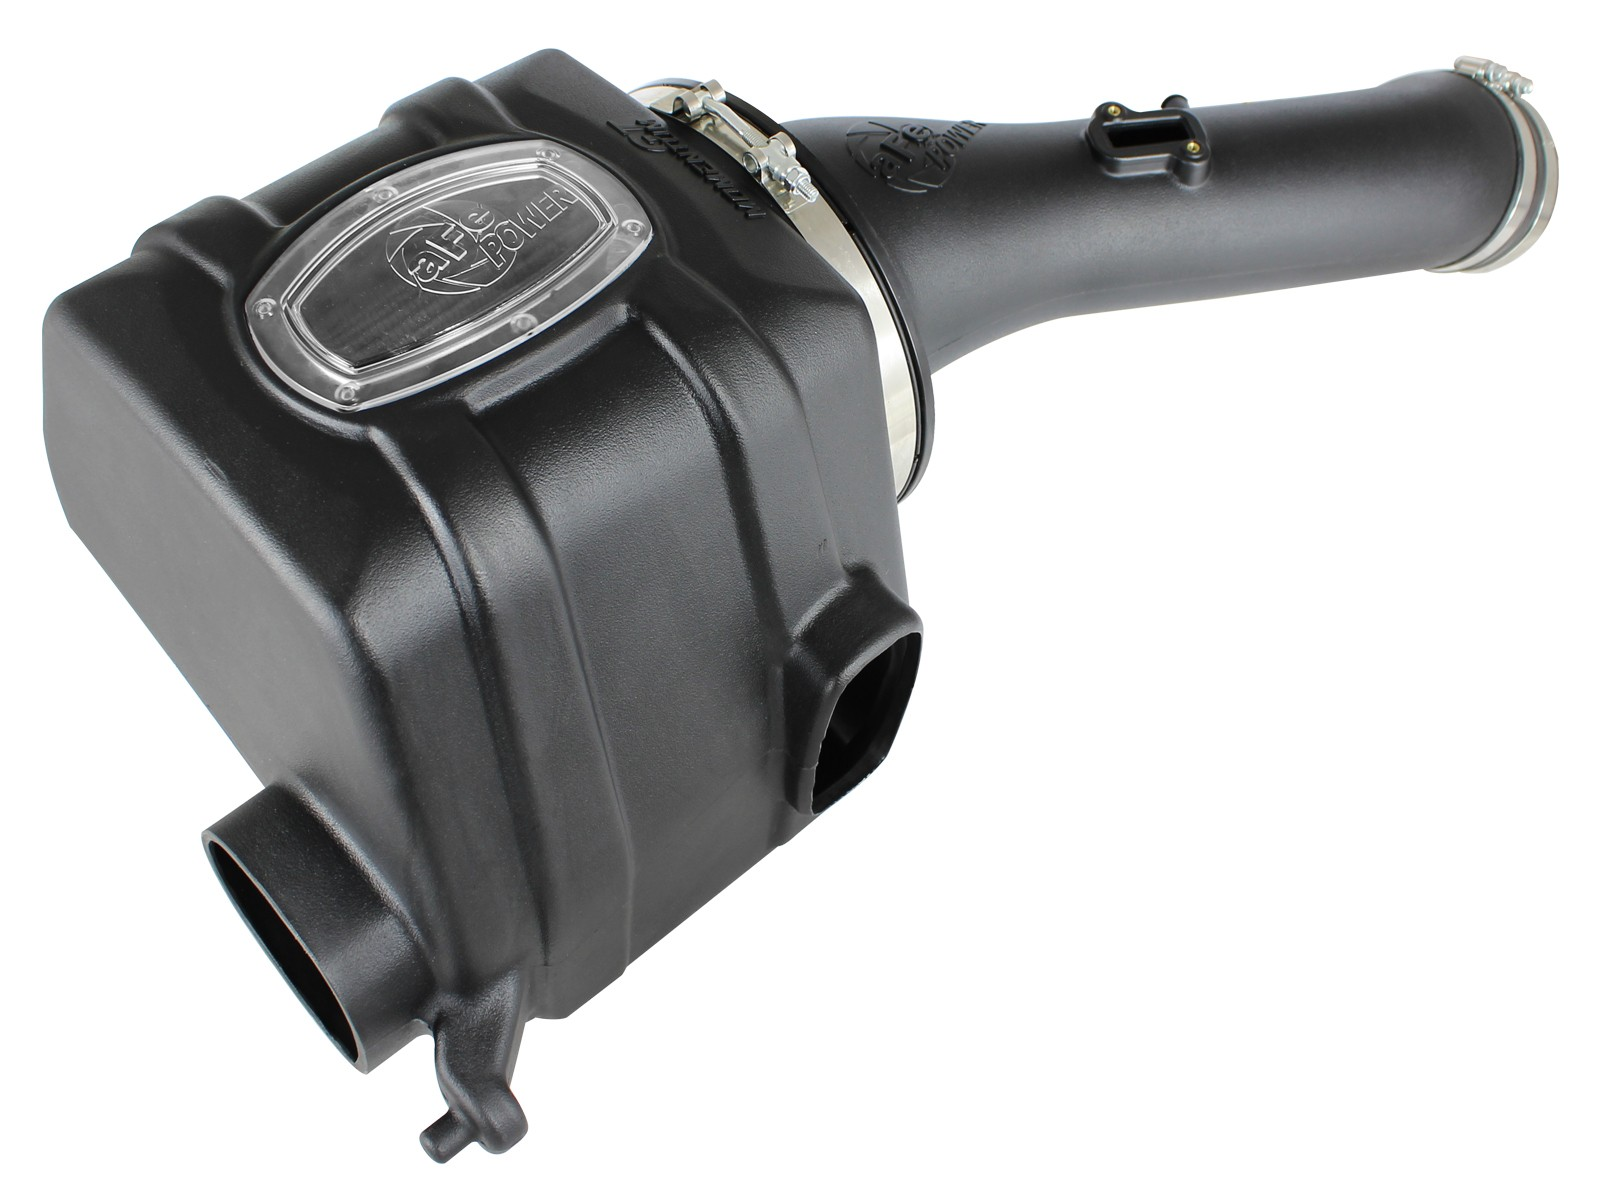 aFe POWER Momentum GT Pro DRY S Cold Air Intake System 2014+ Ships Free